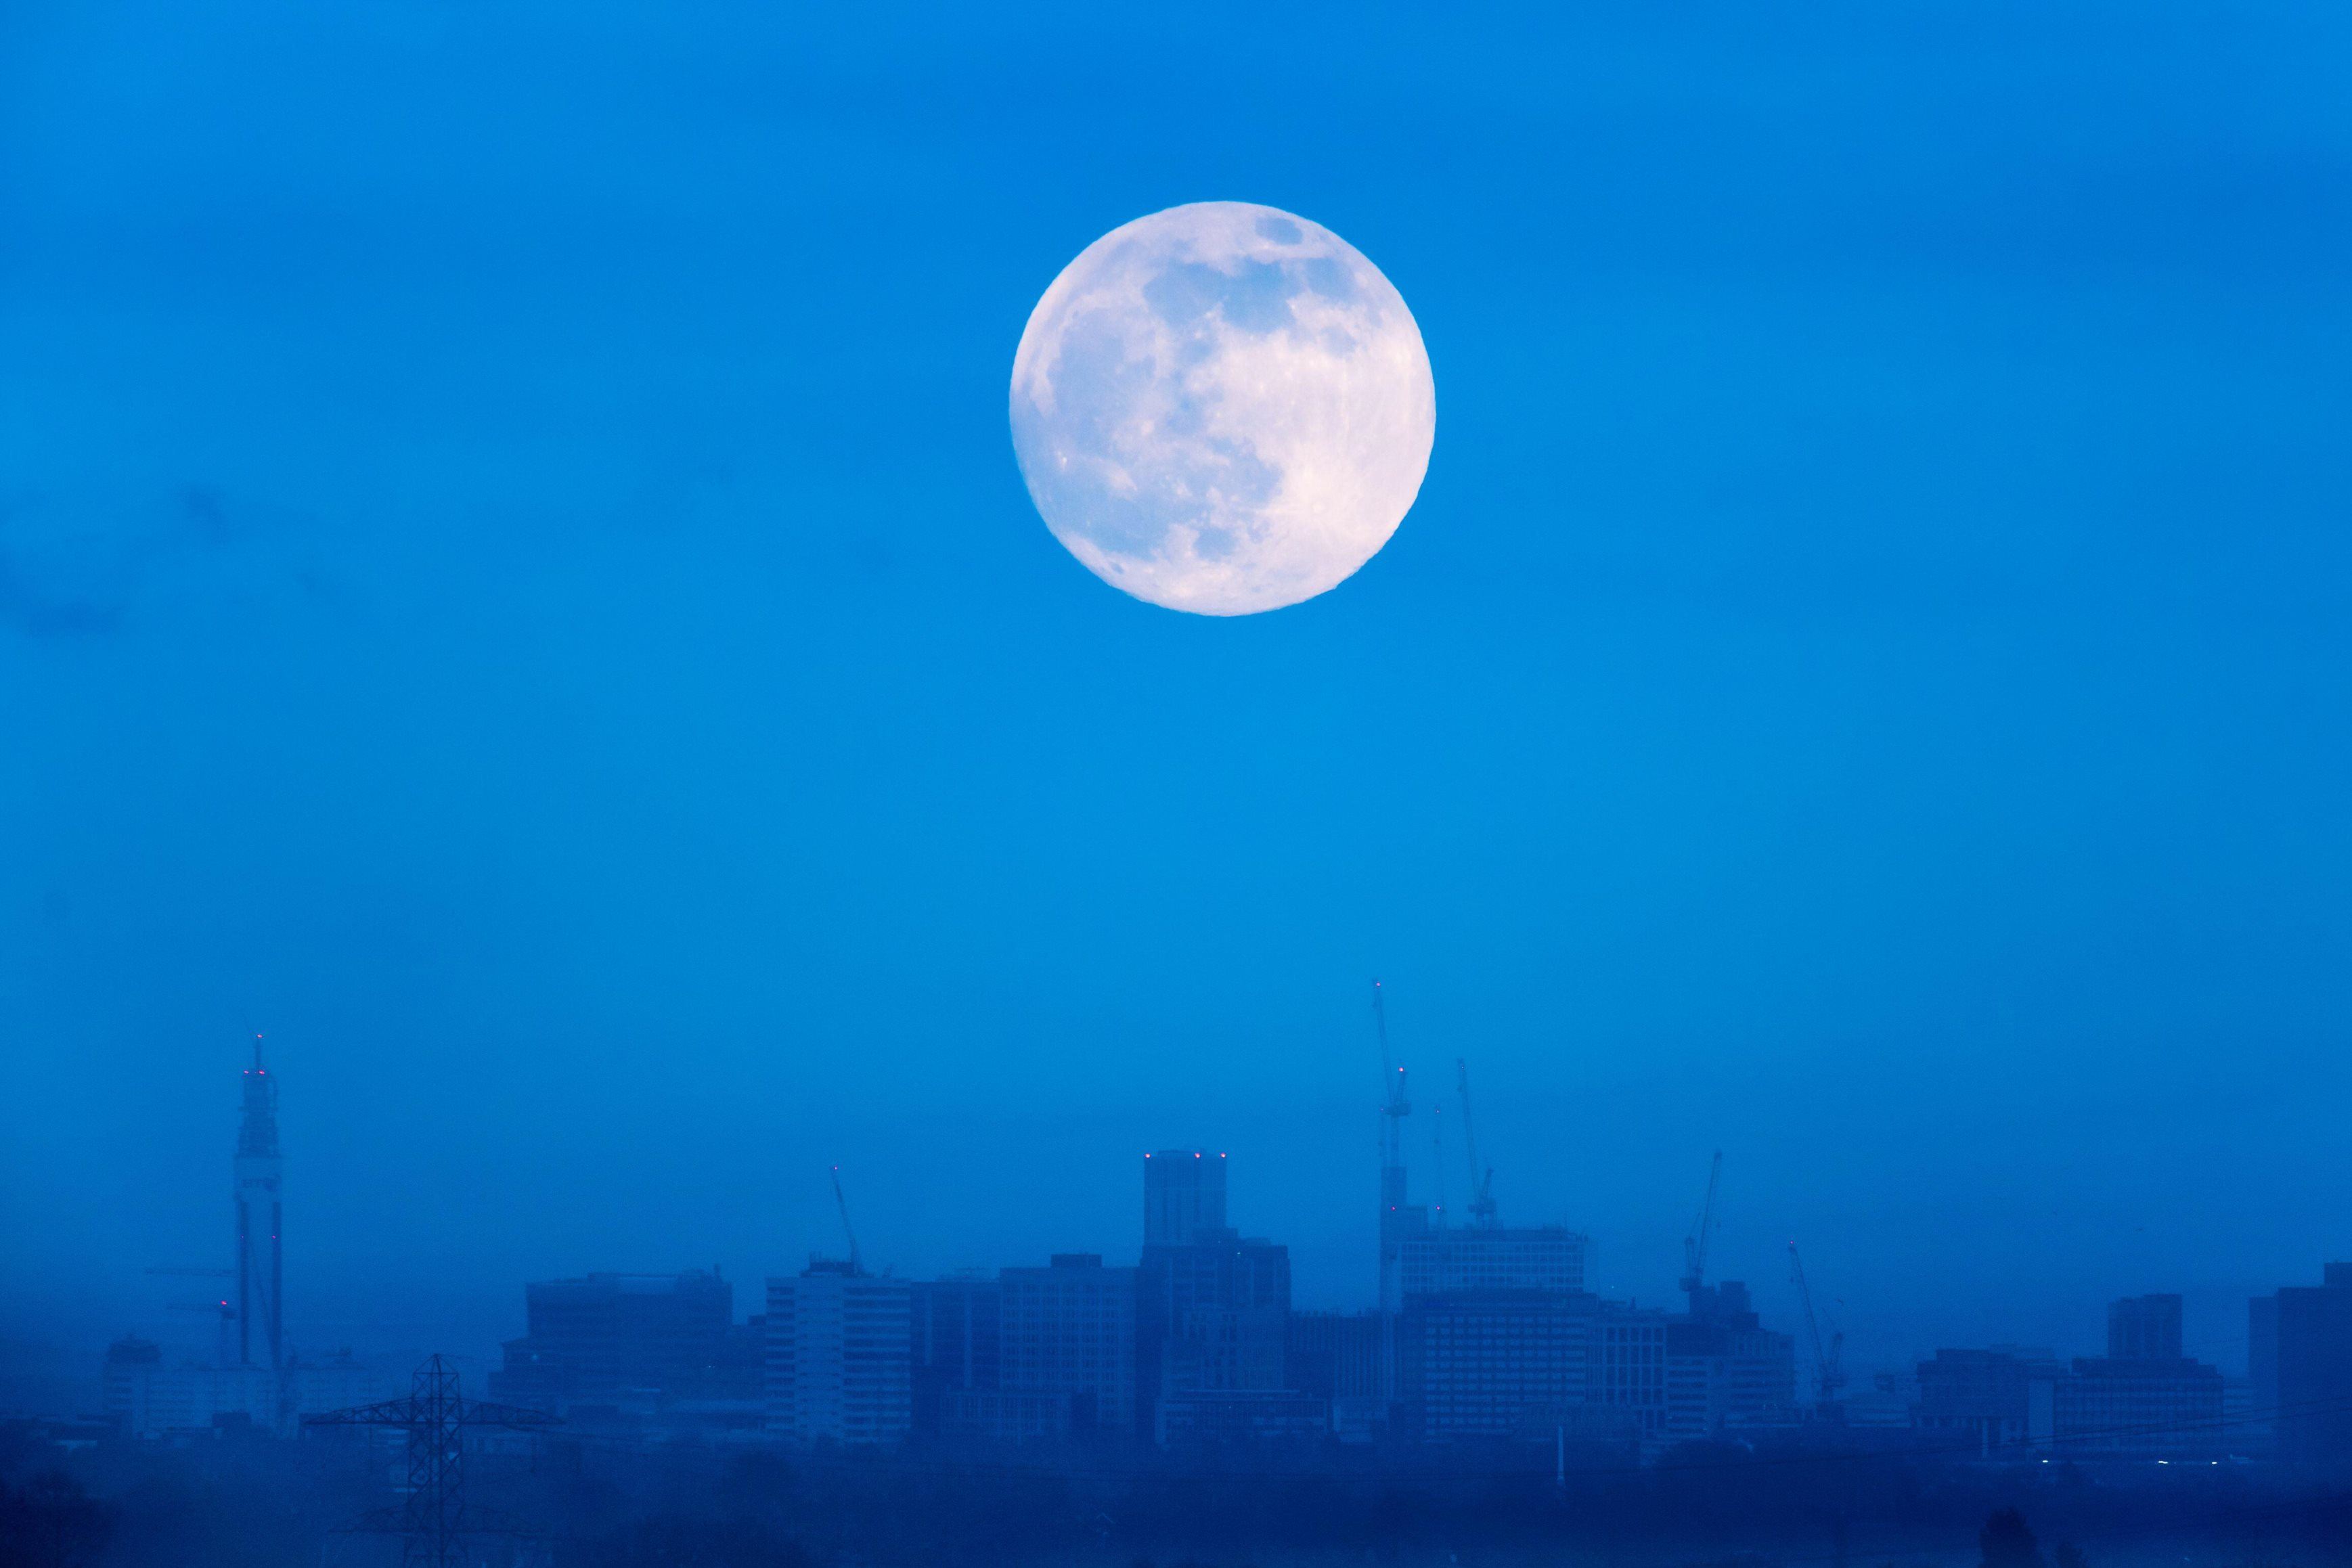 The Full Moon will appear this Saturday